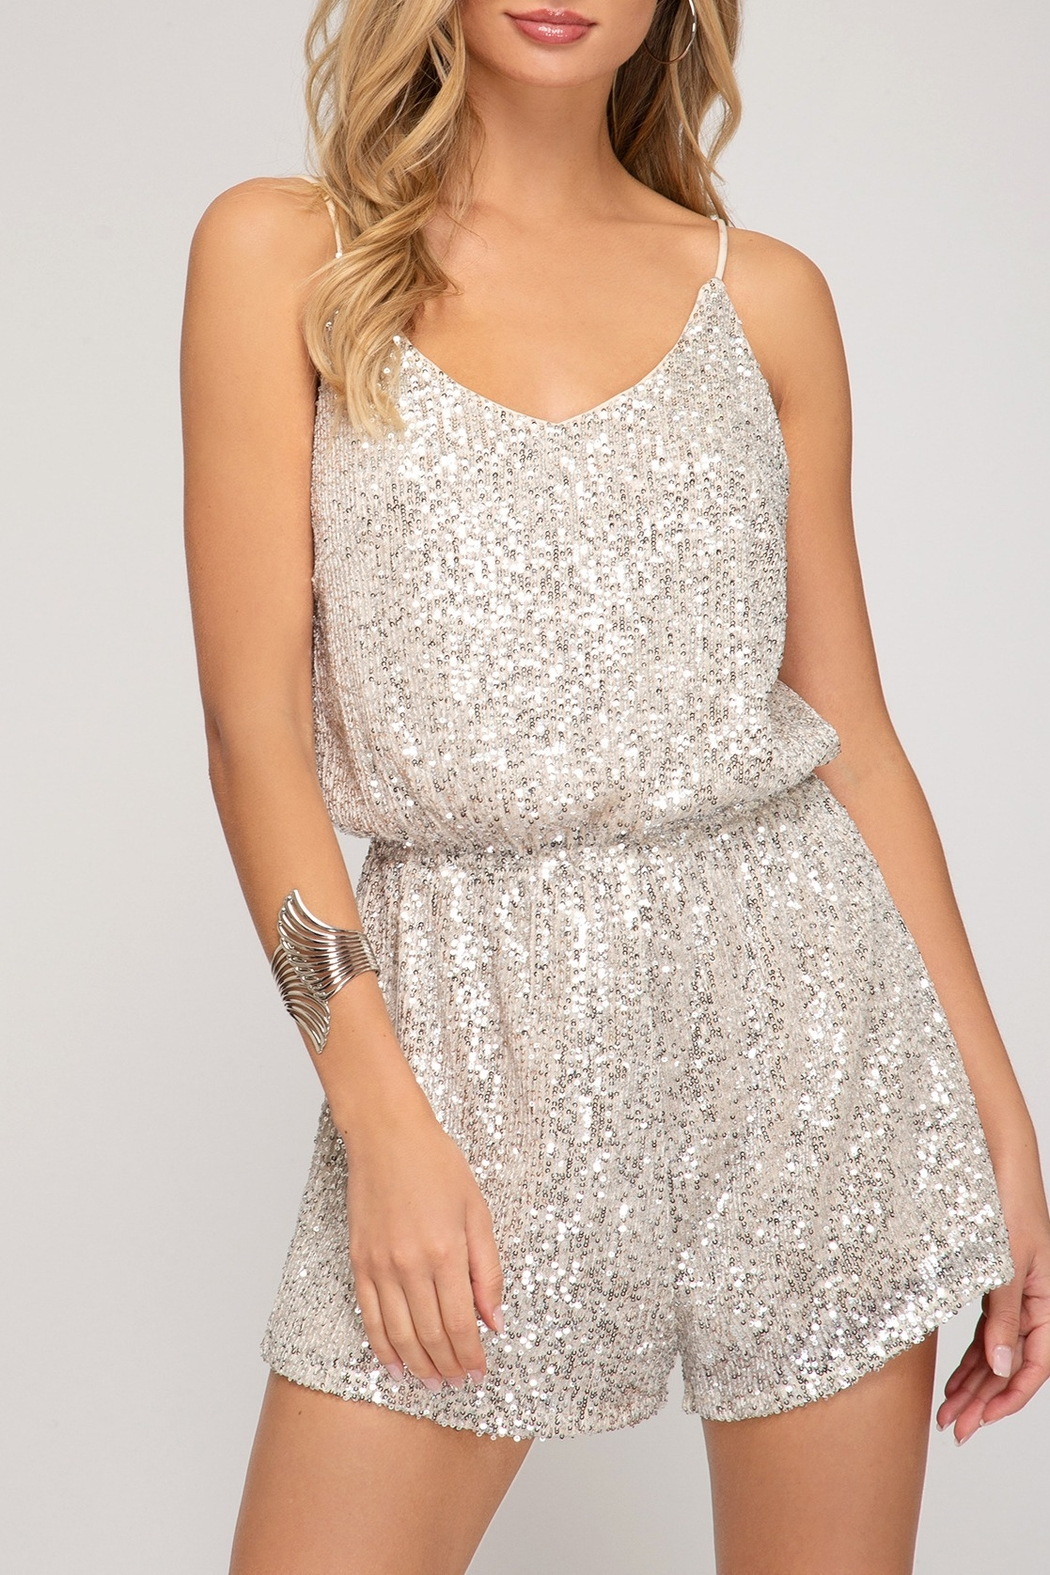 She + Sky Sequin Sass Romper - Front Cropped Image